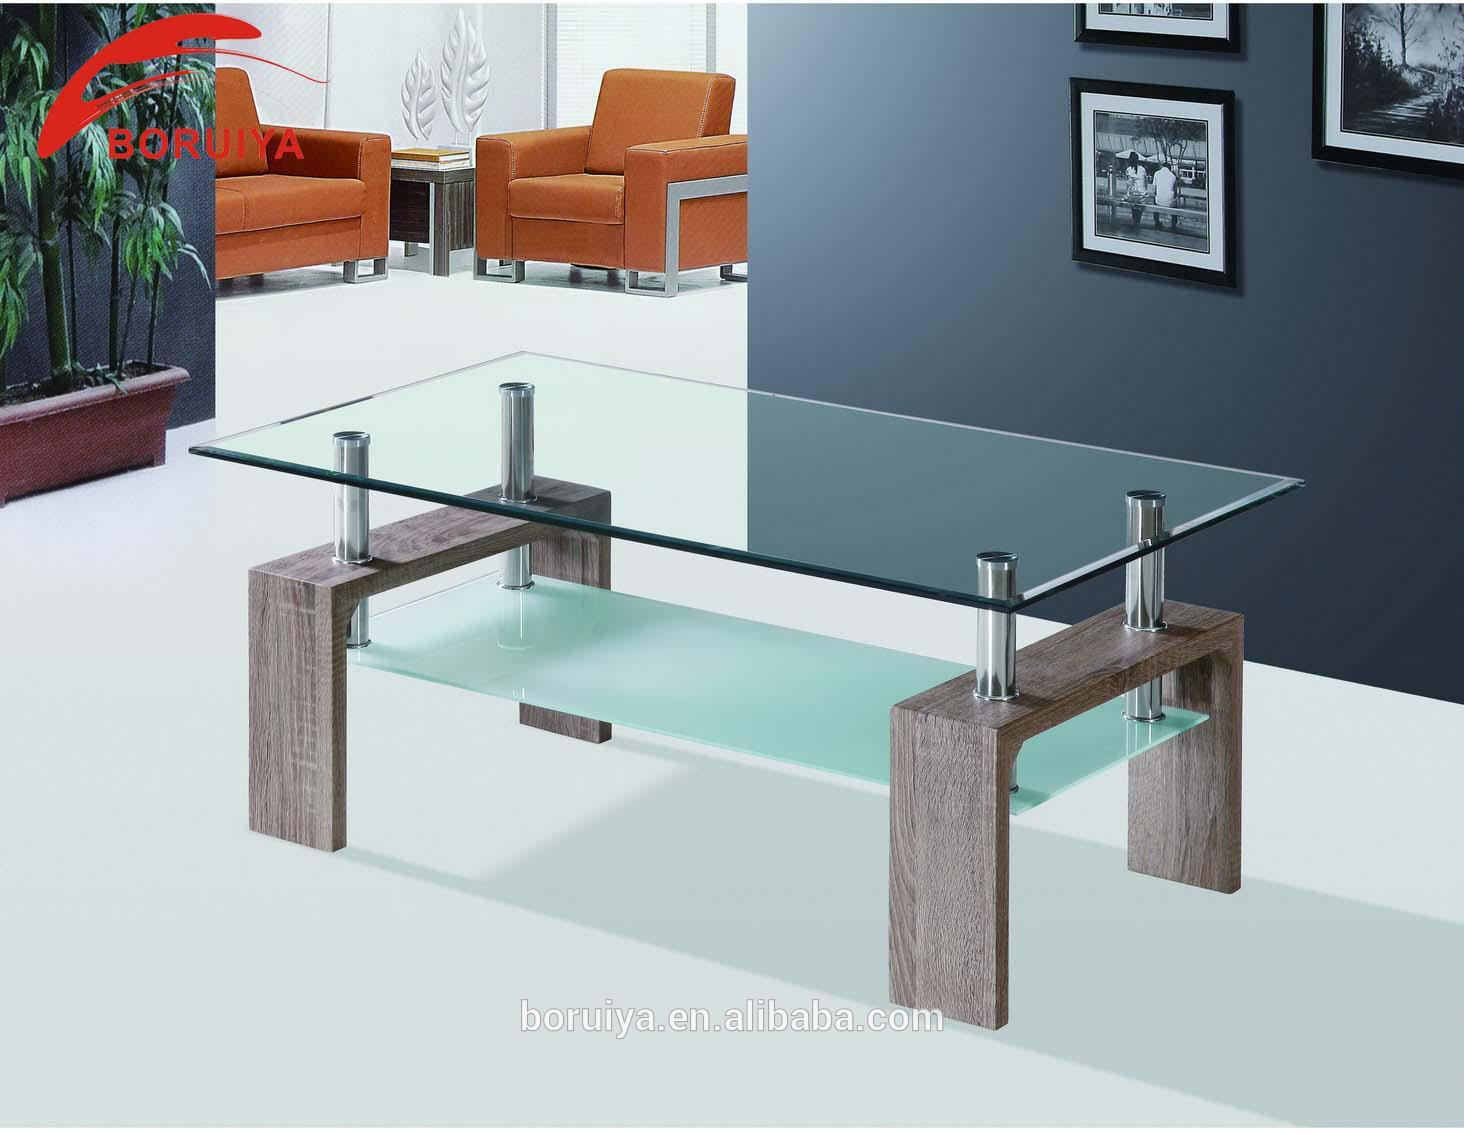 glass furniture design india photo - 6